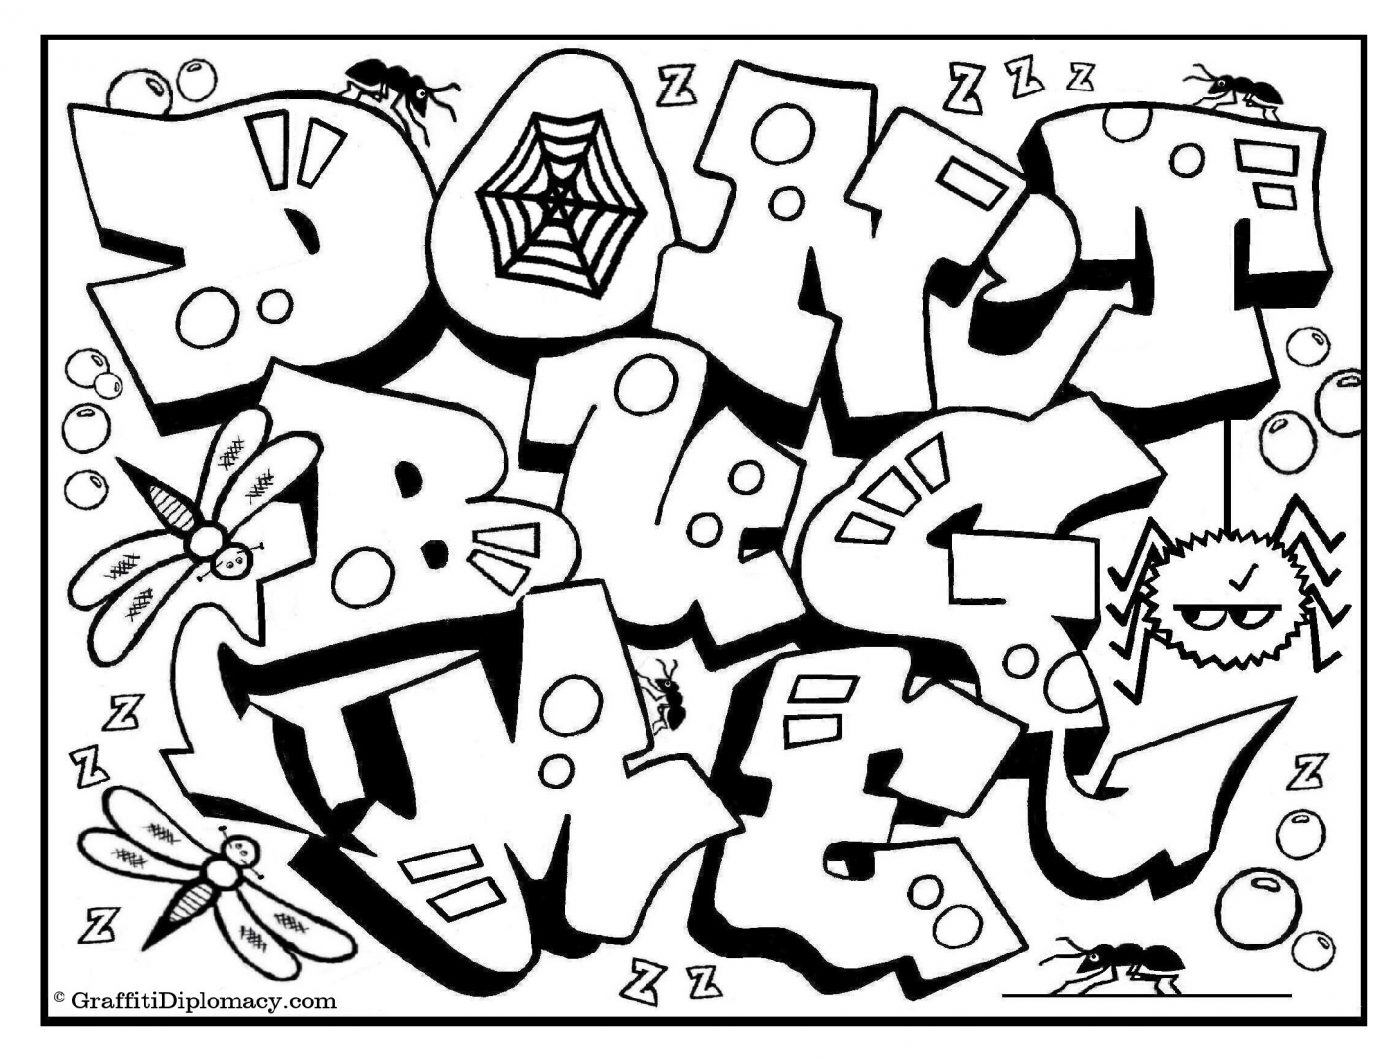 1400x1061 Graffiti Coloring Pages For Adults Names Online Letters Colouring